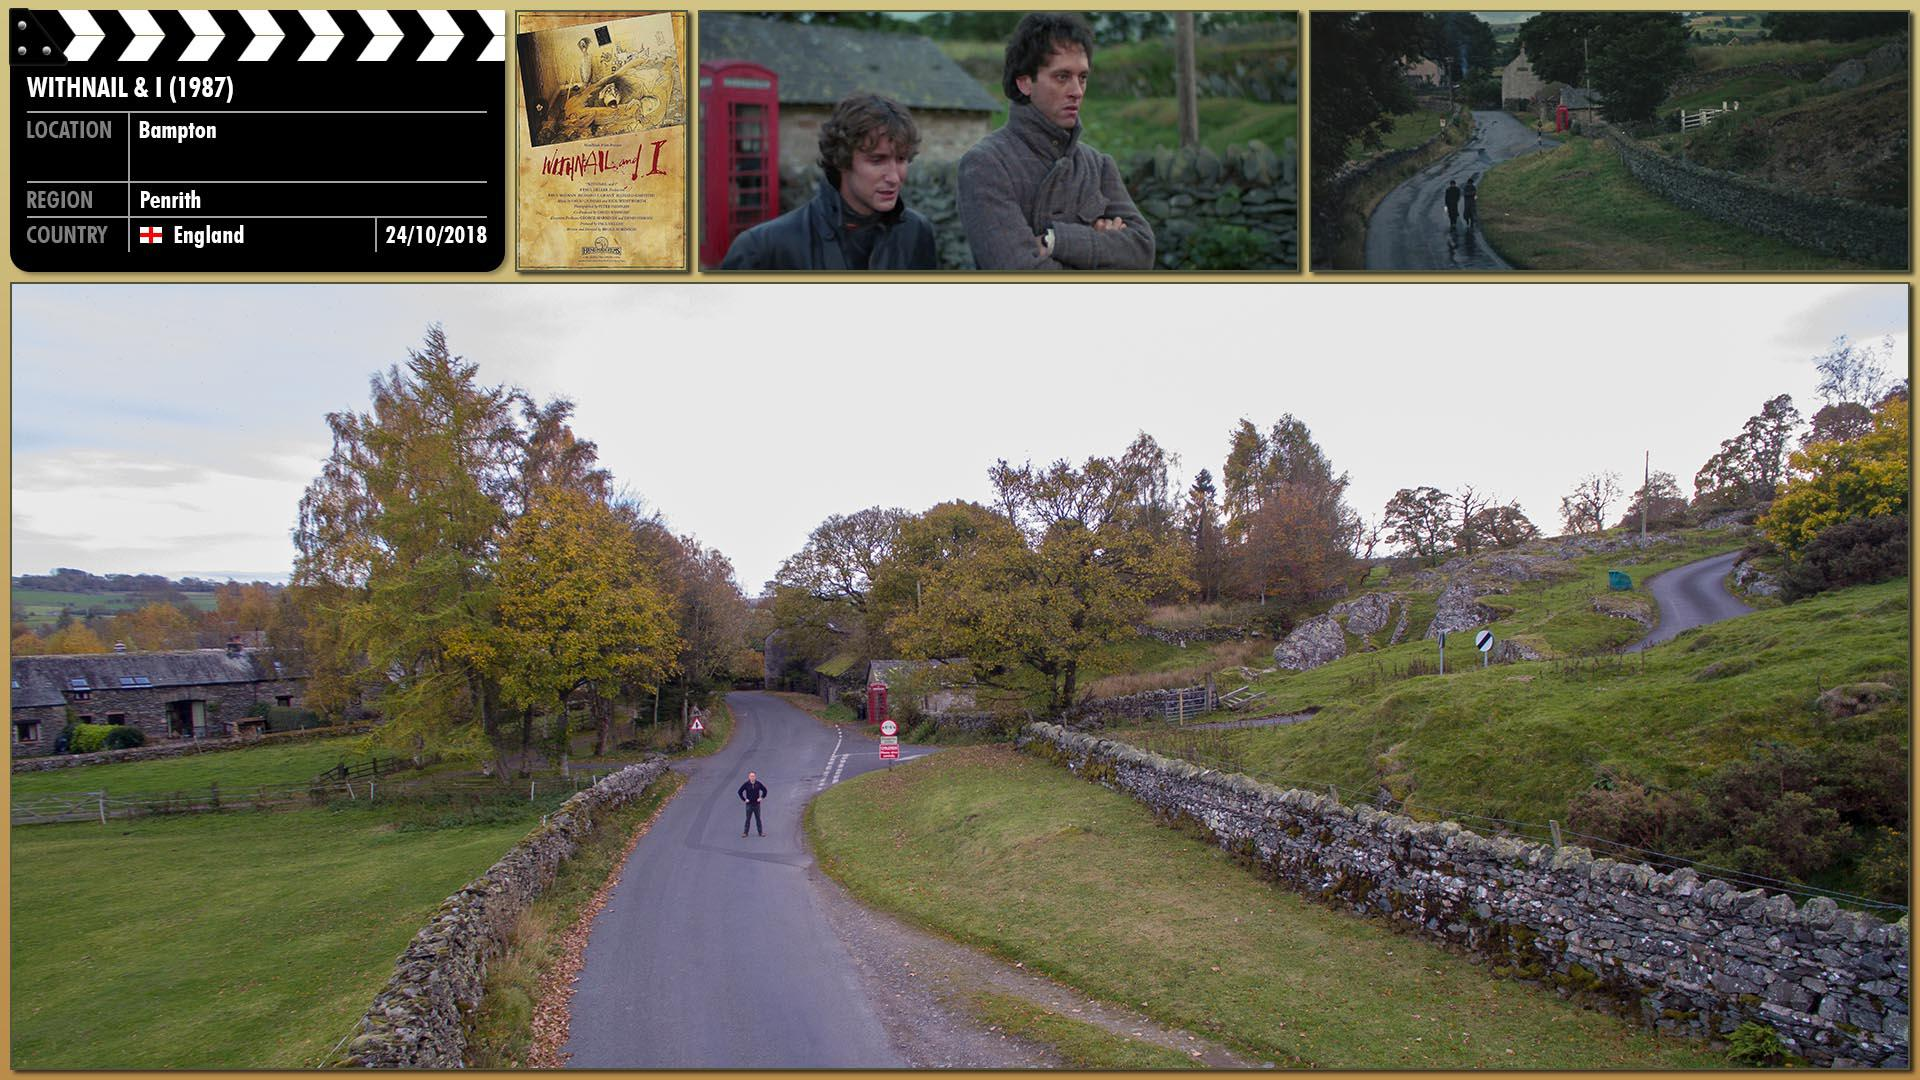 Filming location photo for Withnail & I (1987) 7 of 7